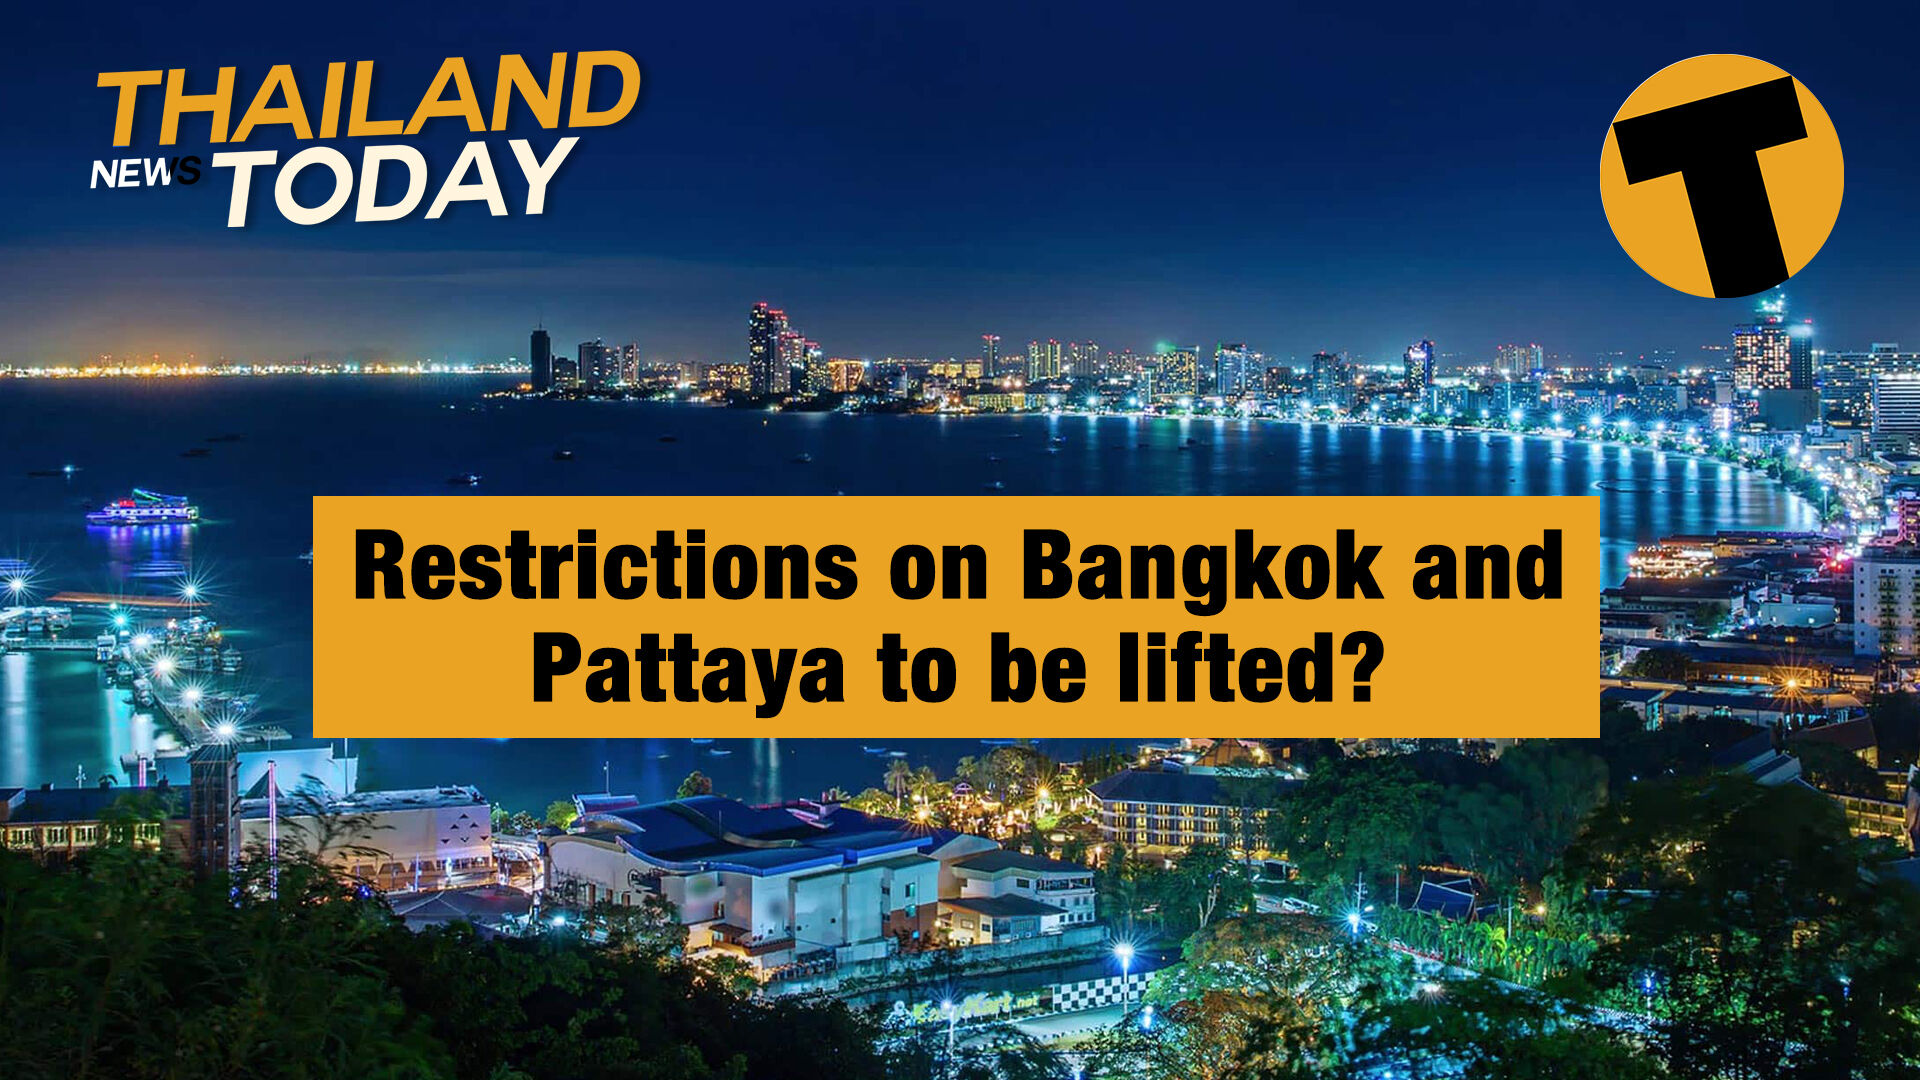 Thailand News Today | Restrictions on Bangkok and Pattaya to be lifted? | January 27 | The Thaiger